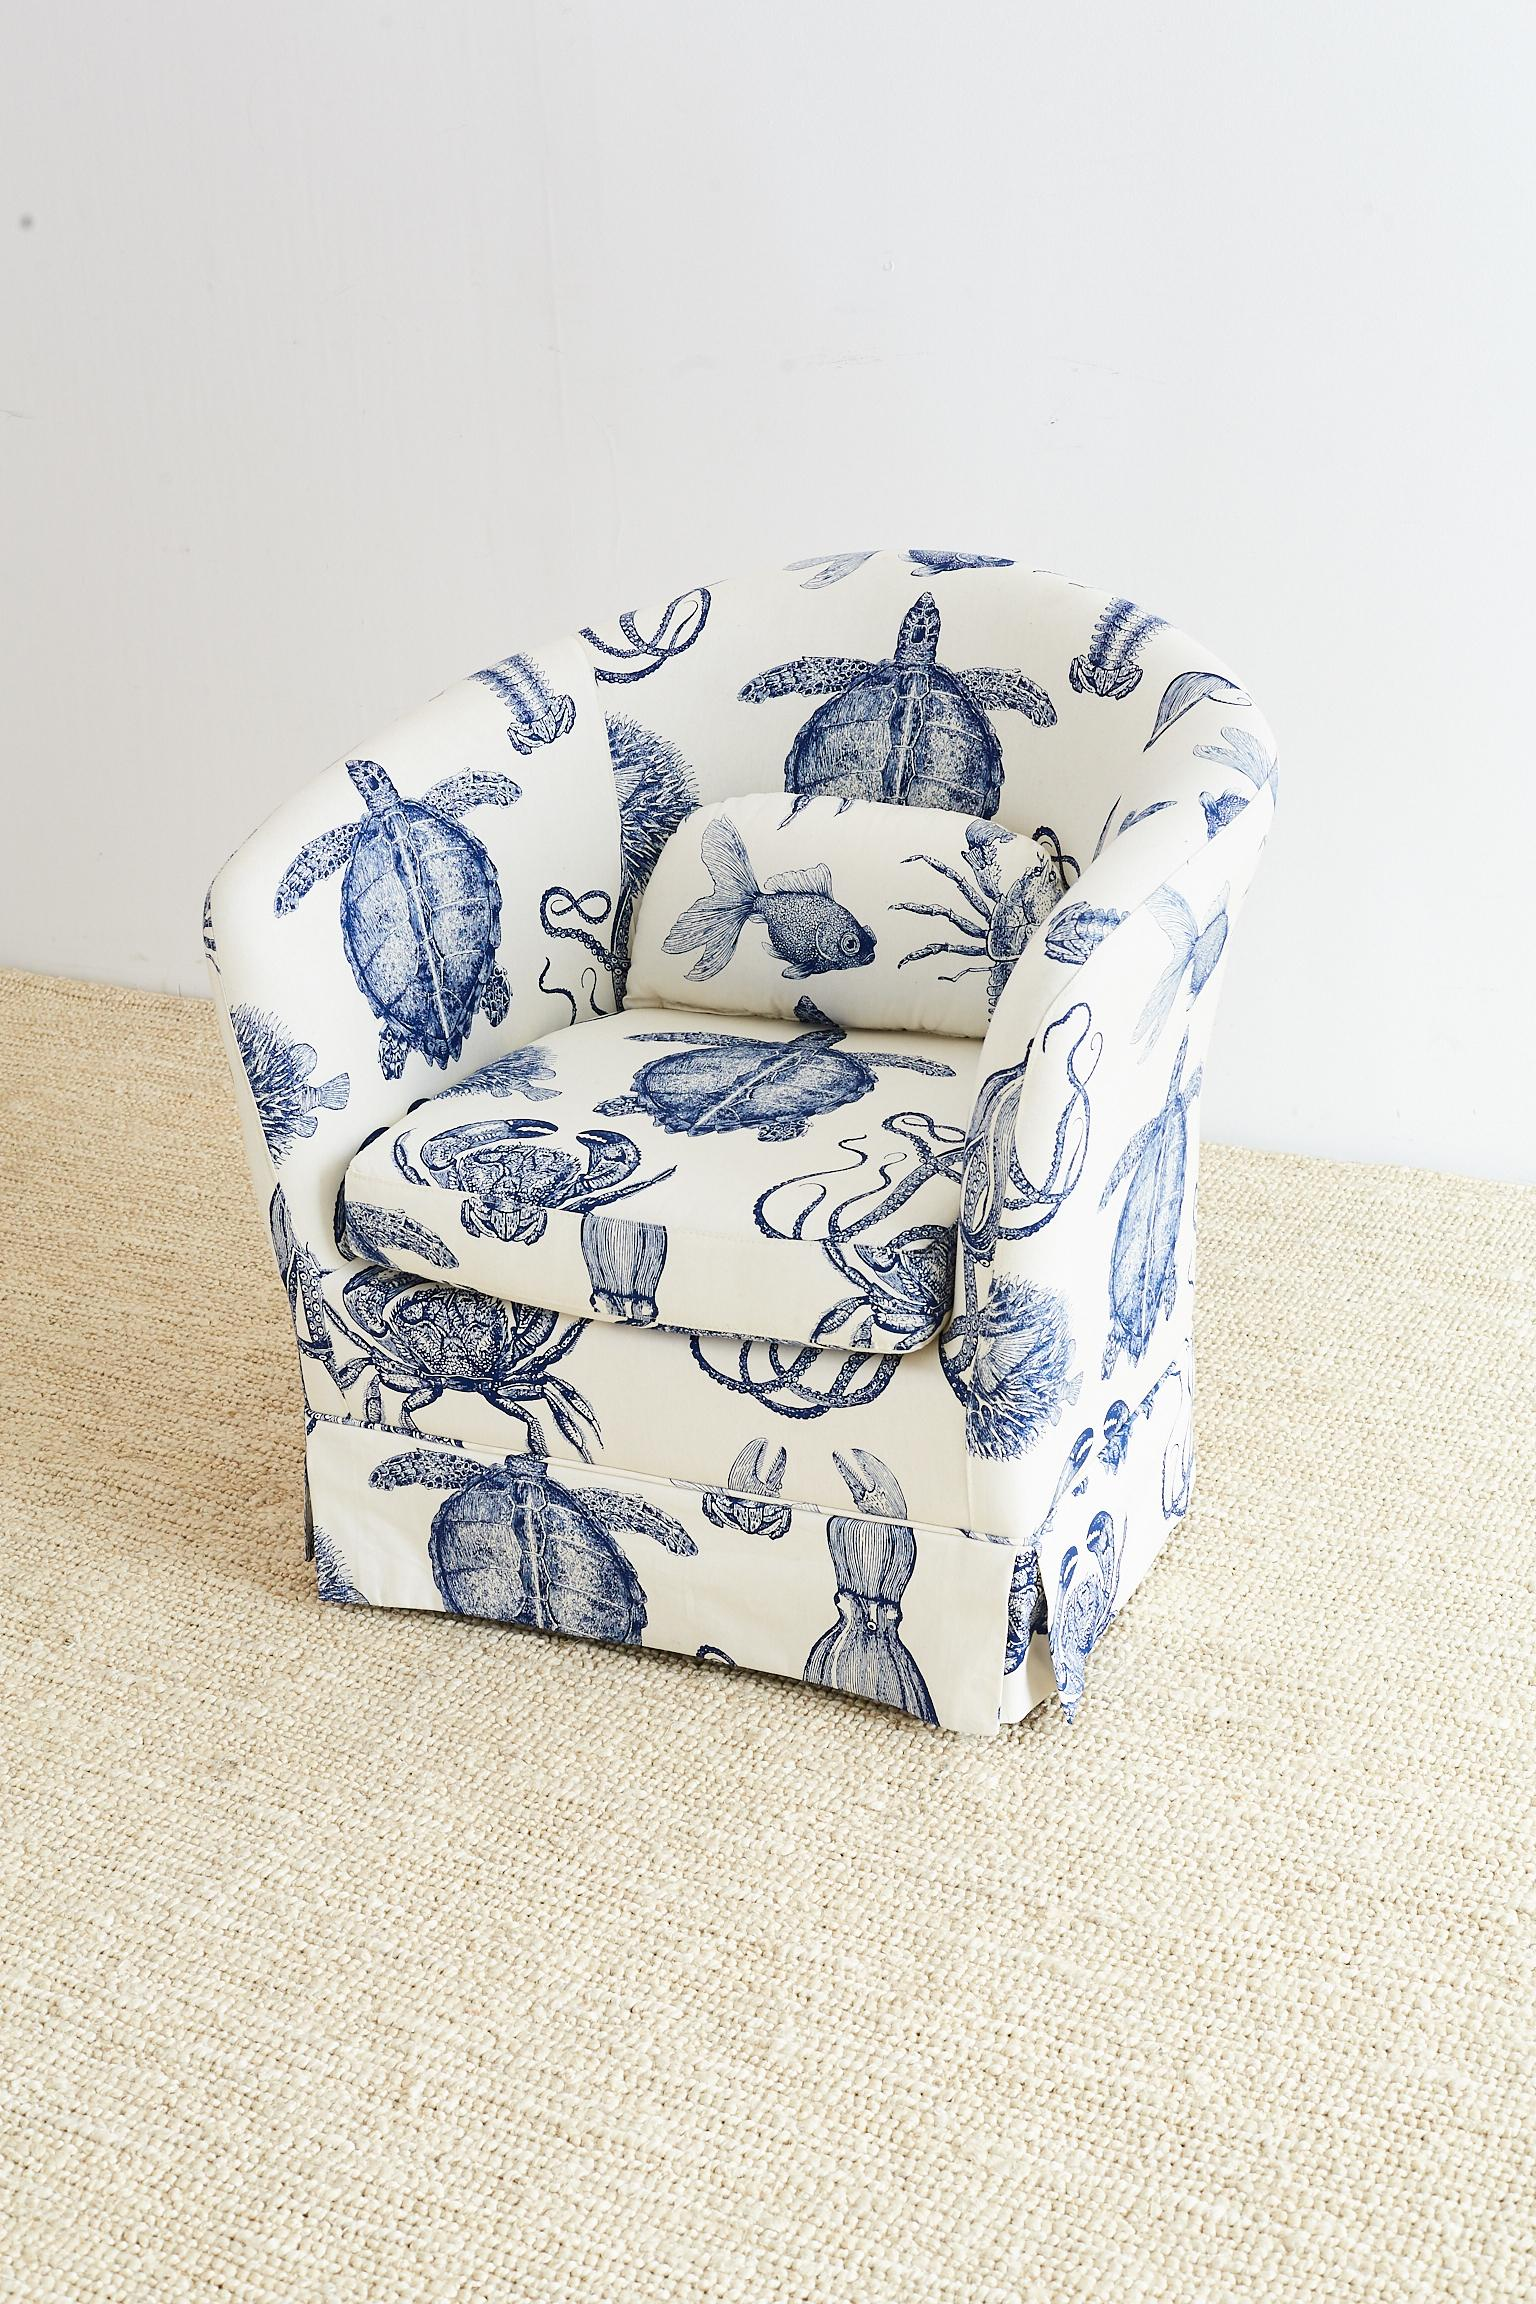 Fabulous Blue And White Sea Life Nautical Upholstered Club Chair By Thomas  Paul. Features An